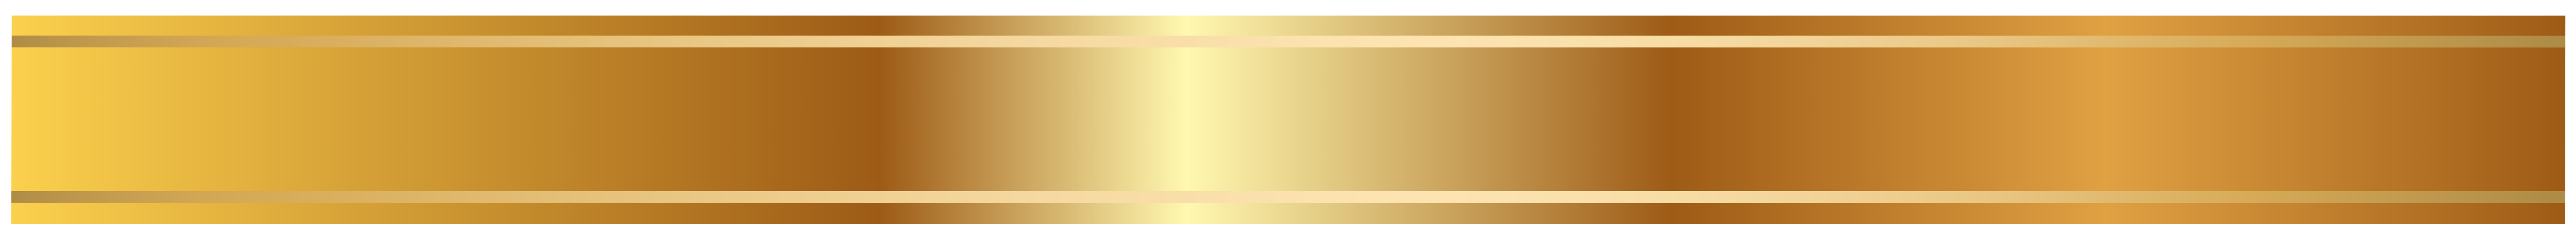 Gold ribbon banner png. Golden border isolated on